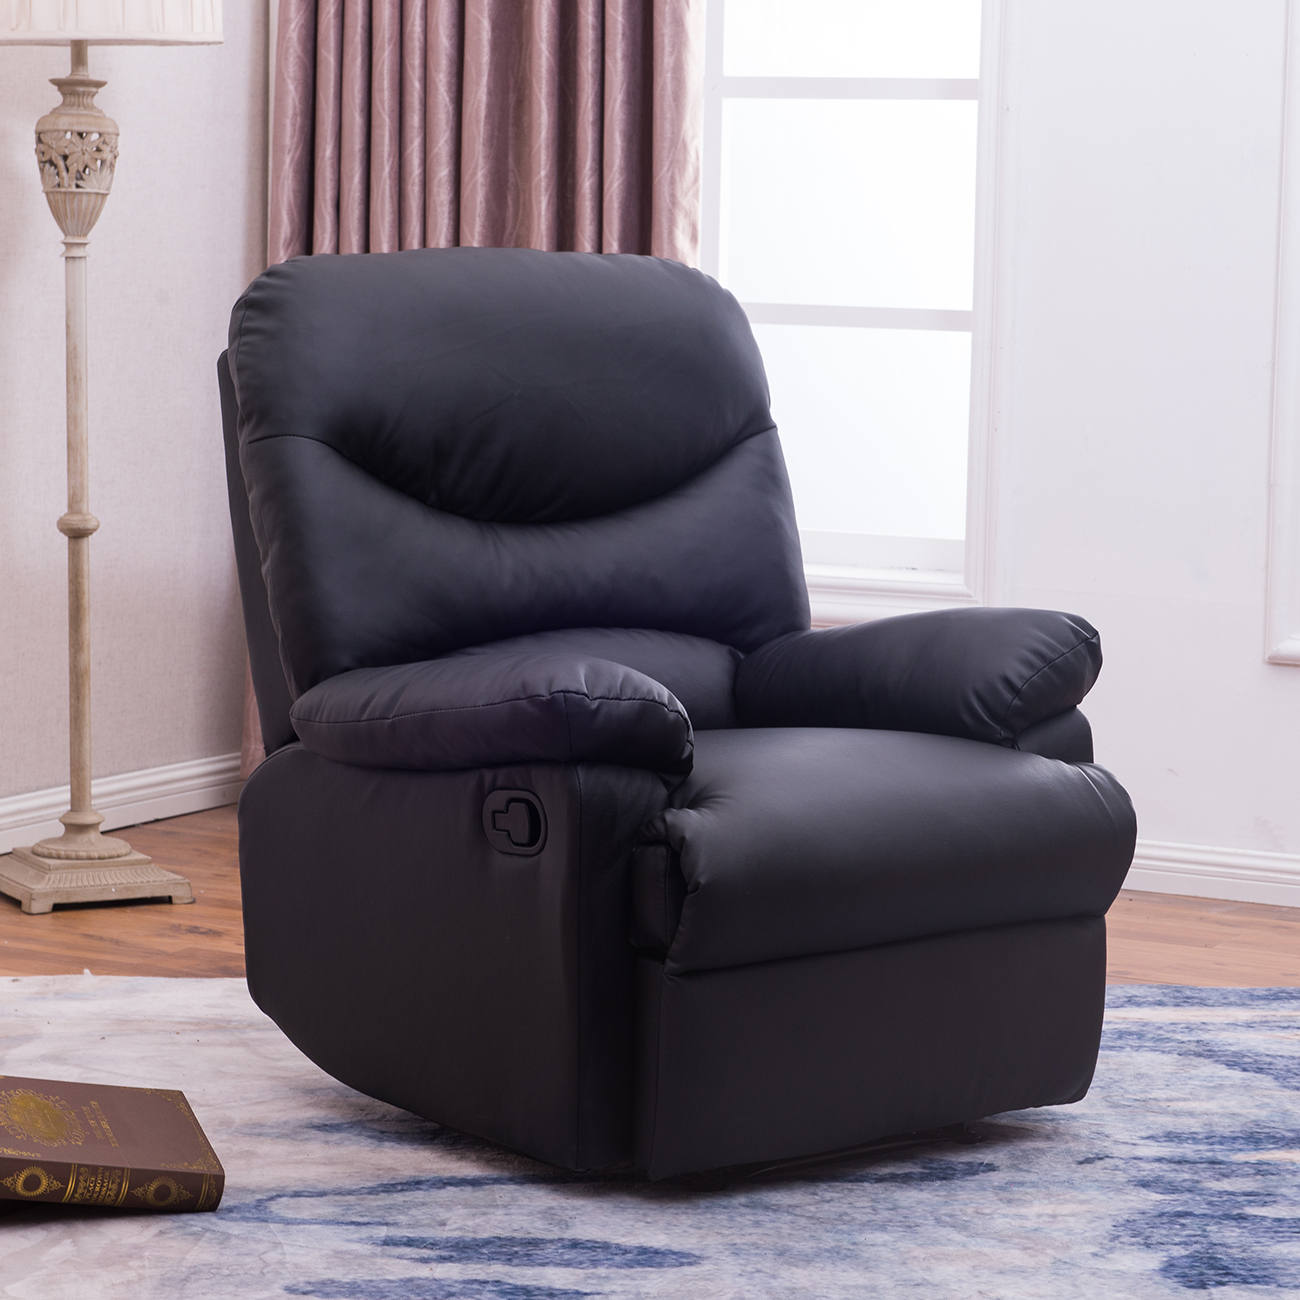 Recliner Black Plush Over Stuffed Bonded Faux Leather Comfy Chair